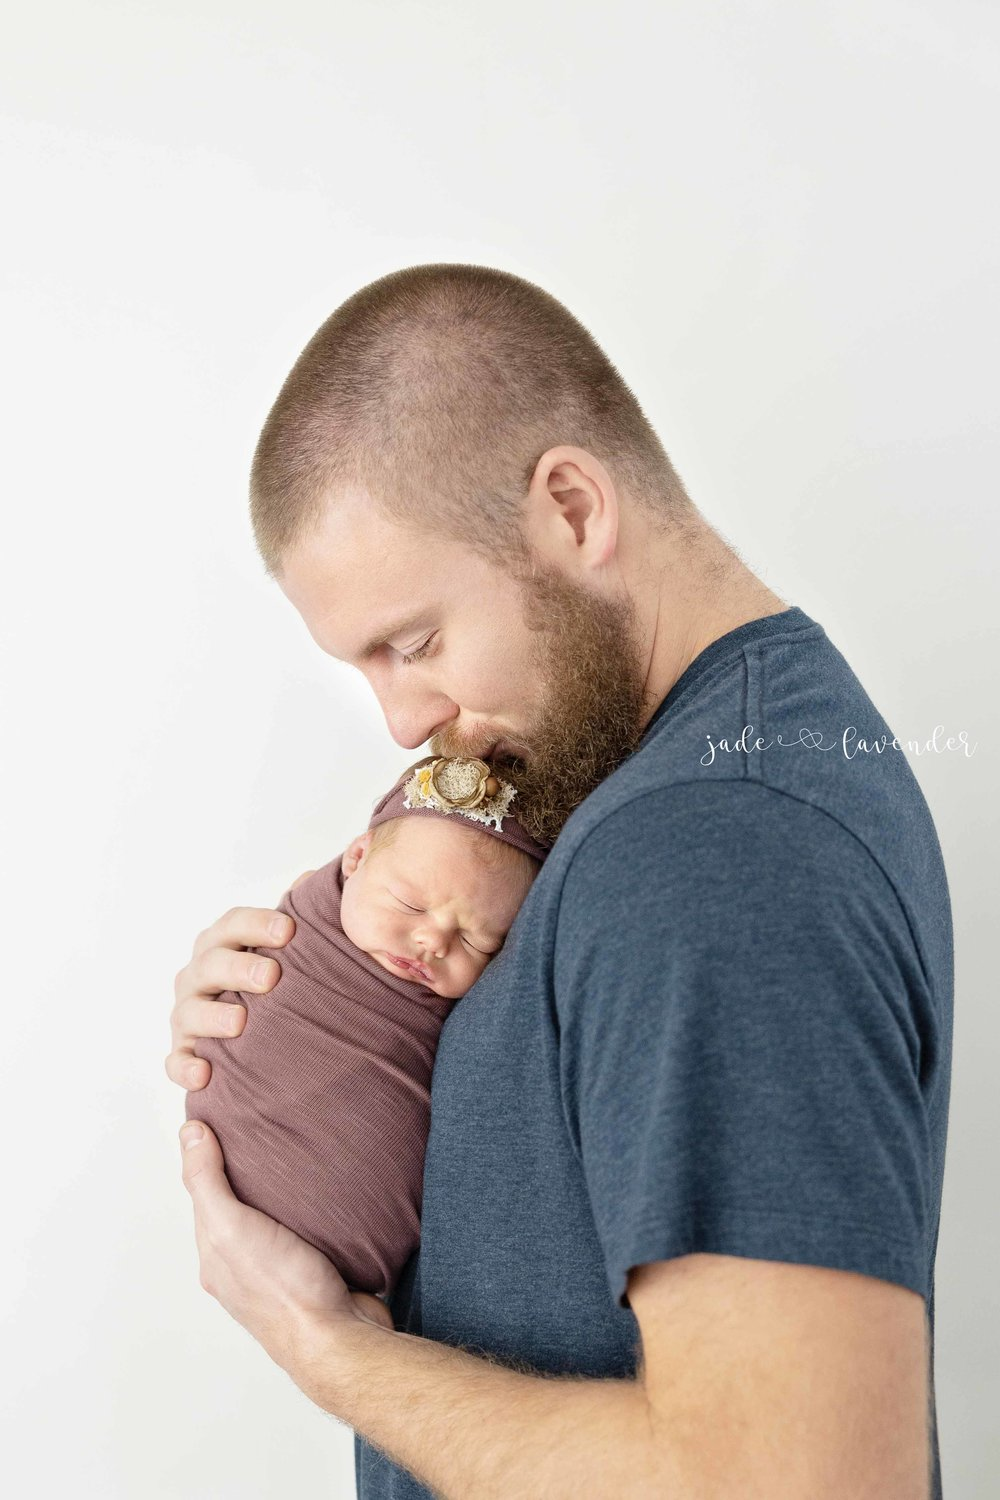 cute-infant-family-photography-baby-photo-studio-newborn-pictures-spokane-washington (9 of 9).jpg